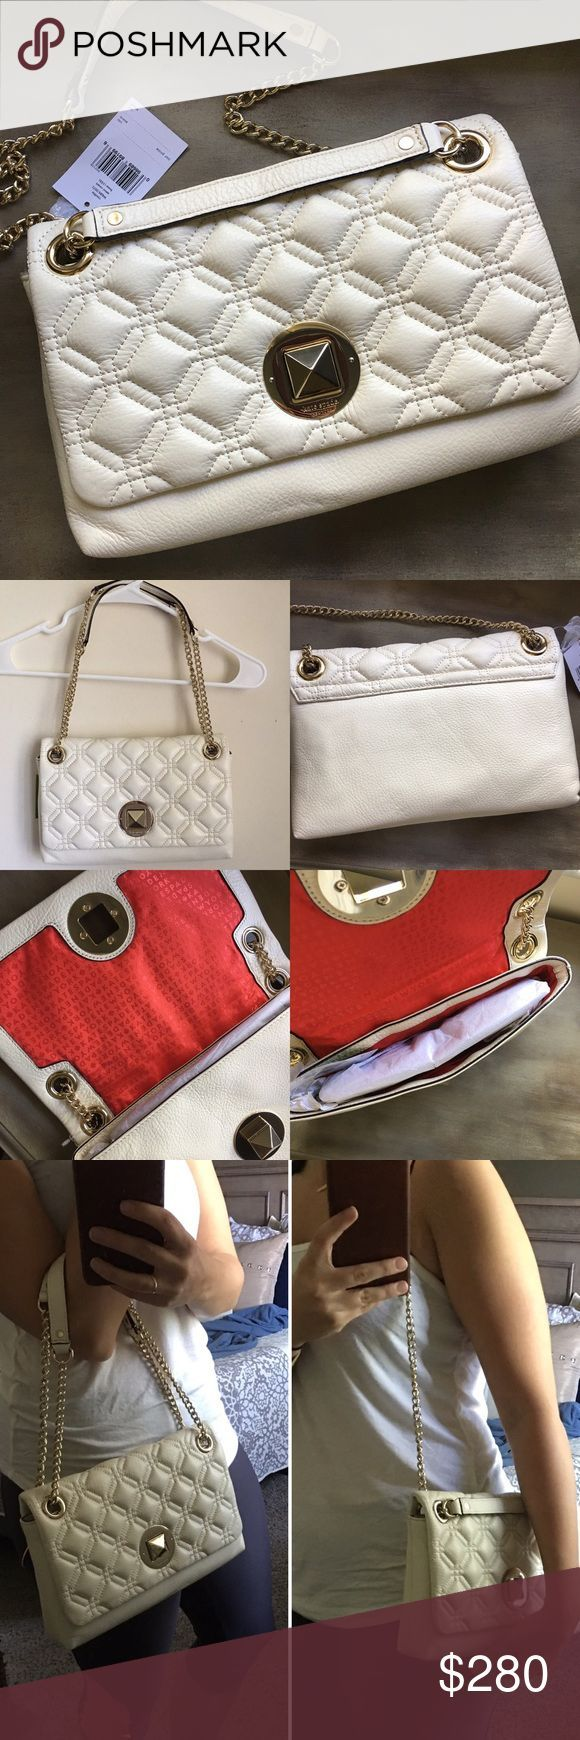 Authentic Kate Spade quilted small purse Brand new still with tags! Gorgeous quilting throughout with accented red interior. Can be carried as a handbag or shoulder bag. Gold details. Style is Cynthia WKRU3571. Great deal. Size is approximately 11x7. Come with dust bag. 👉🏼 Accepting Reasonable offers!!! kate spade Bags - medium purse, handbags for ladies online shopping, white handbag sale *ad